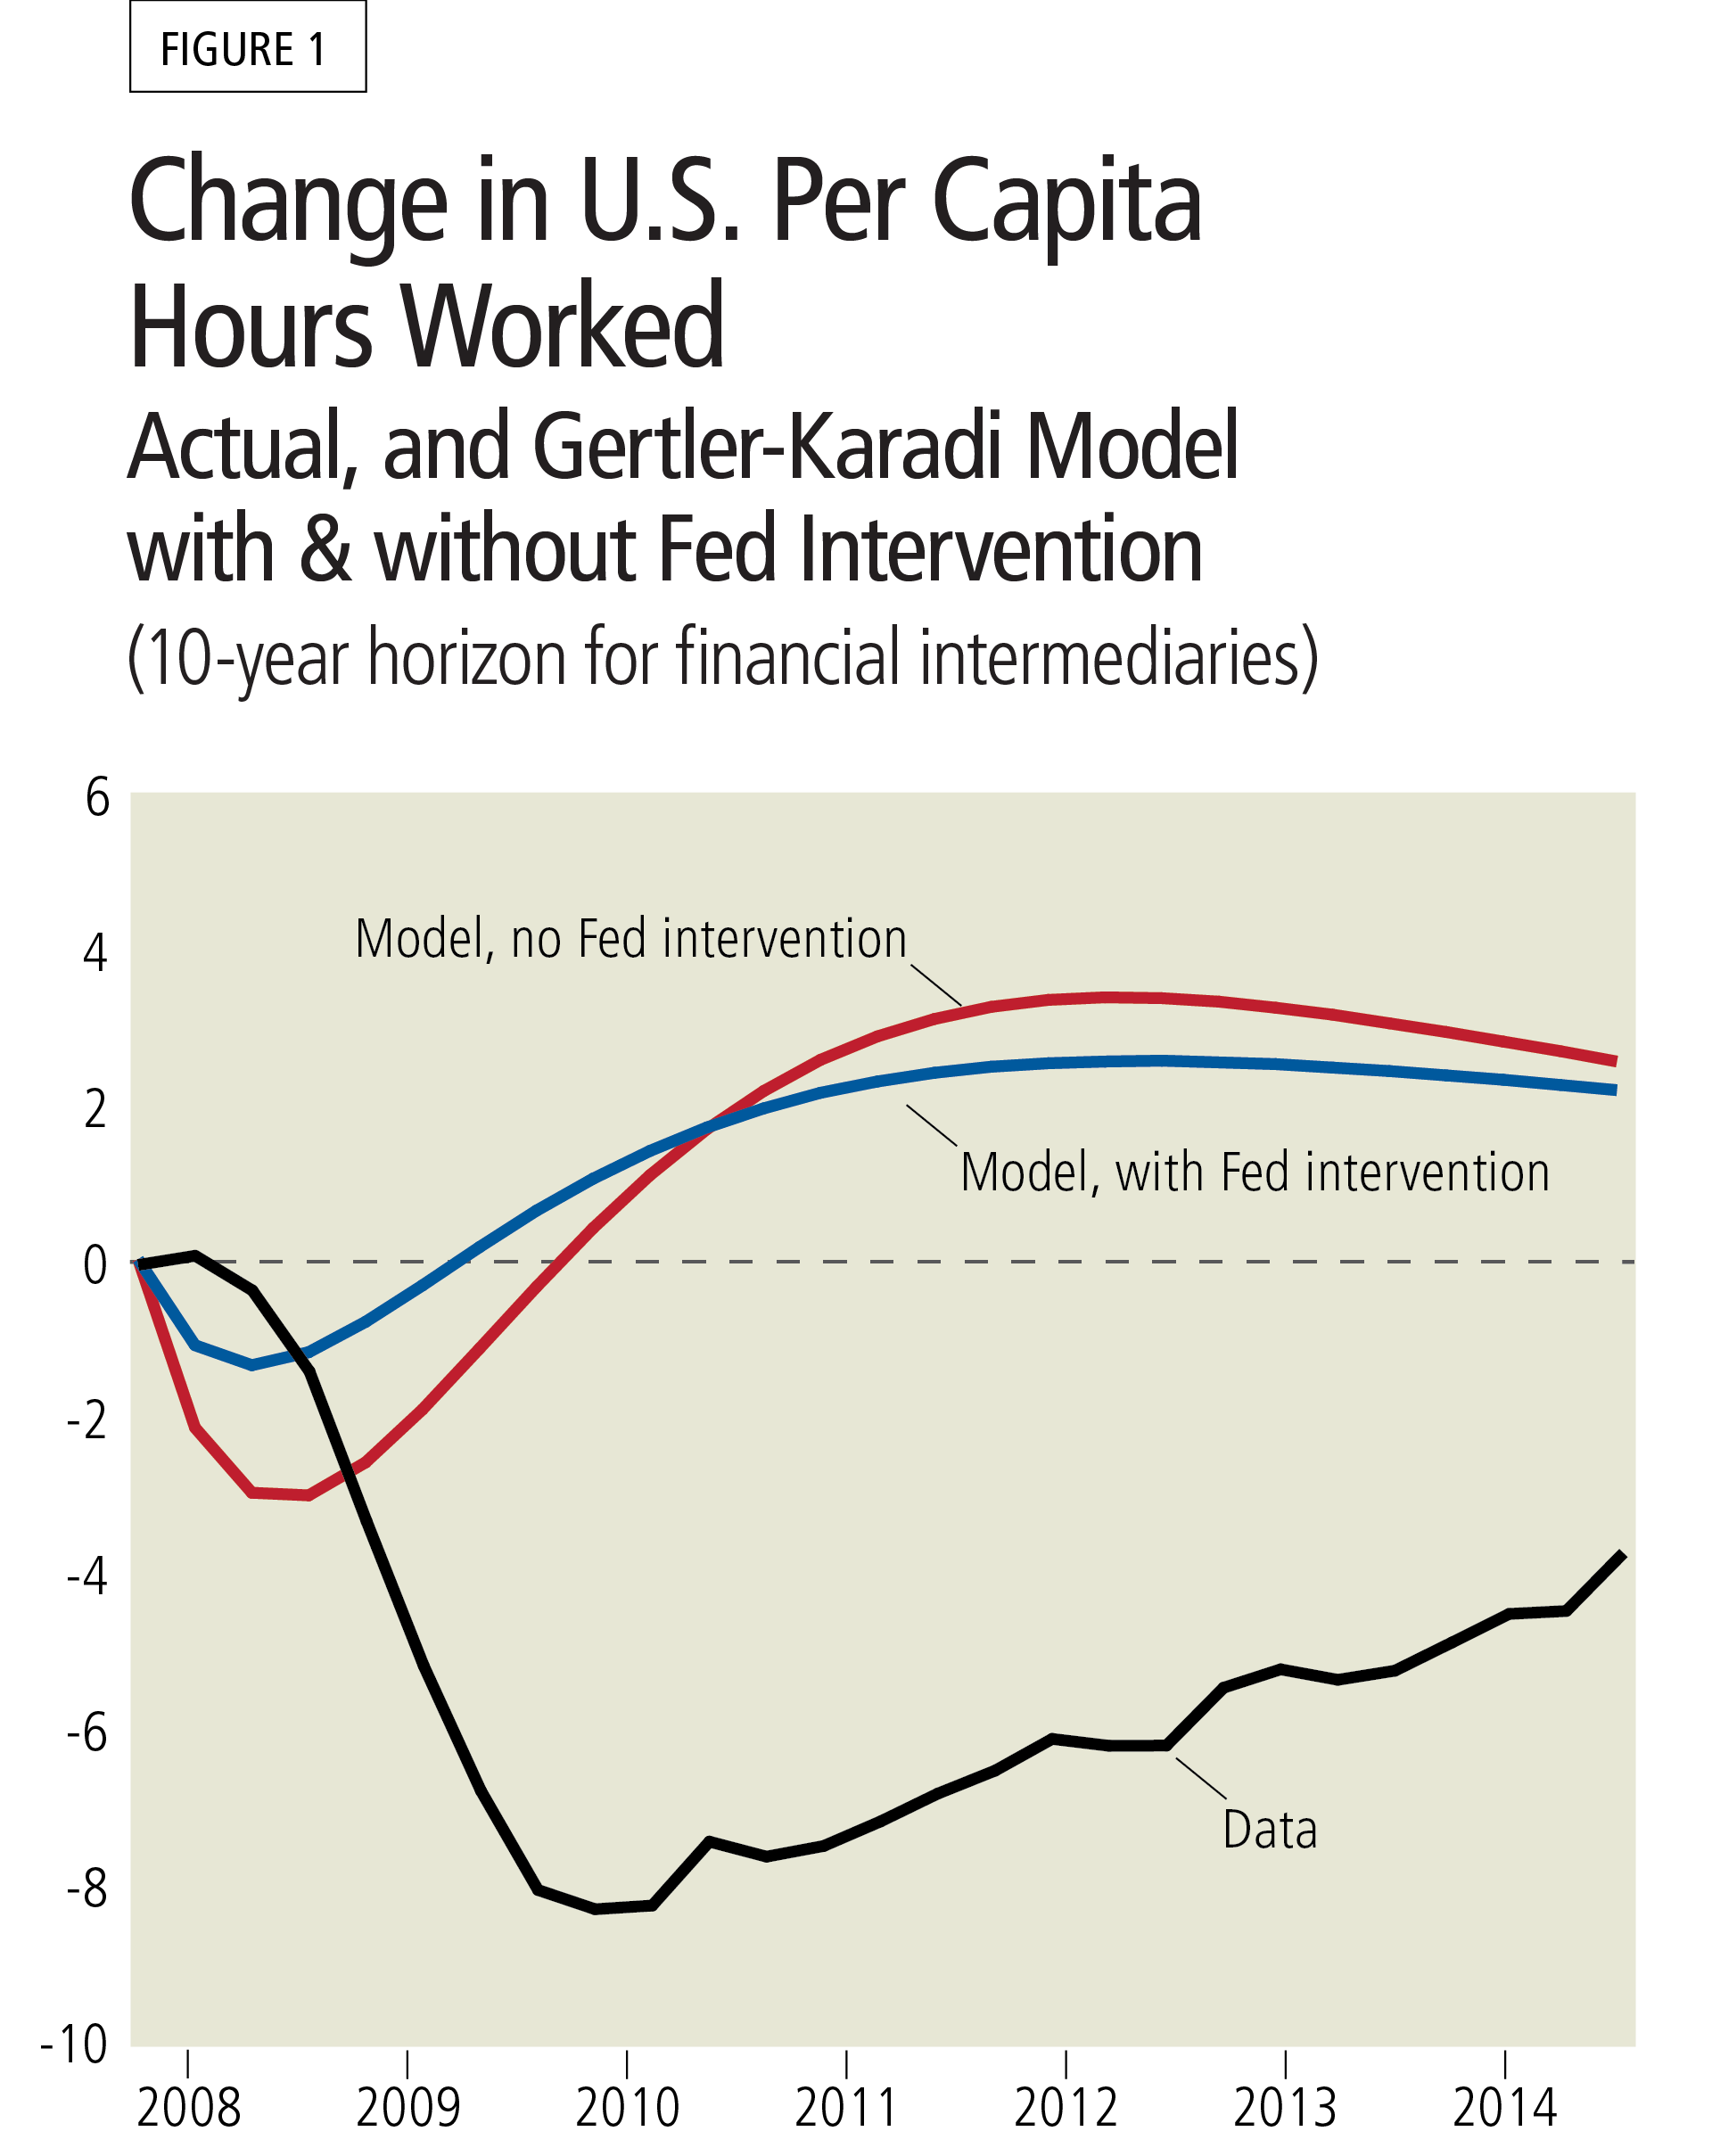 Figure 1: Change in U.S. Per Capita Hours Worked - Actual, and Gertler-Karadi Model with and without Fed Intervention (10-year horizon for financial intermediaries)